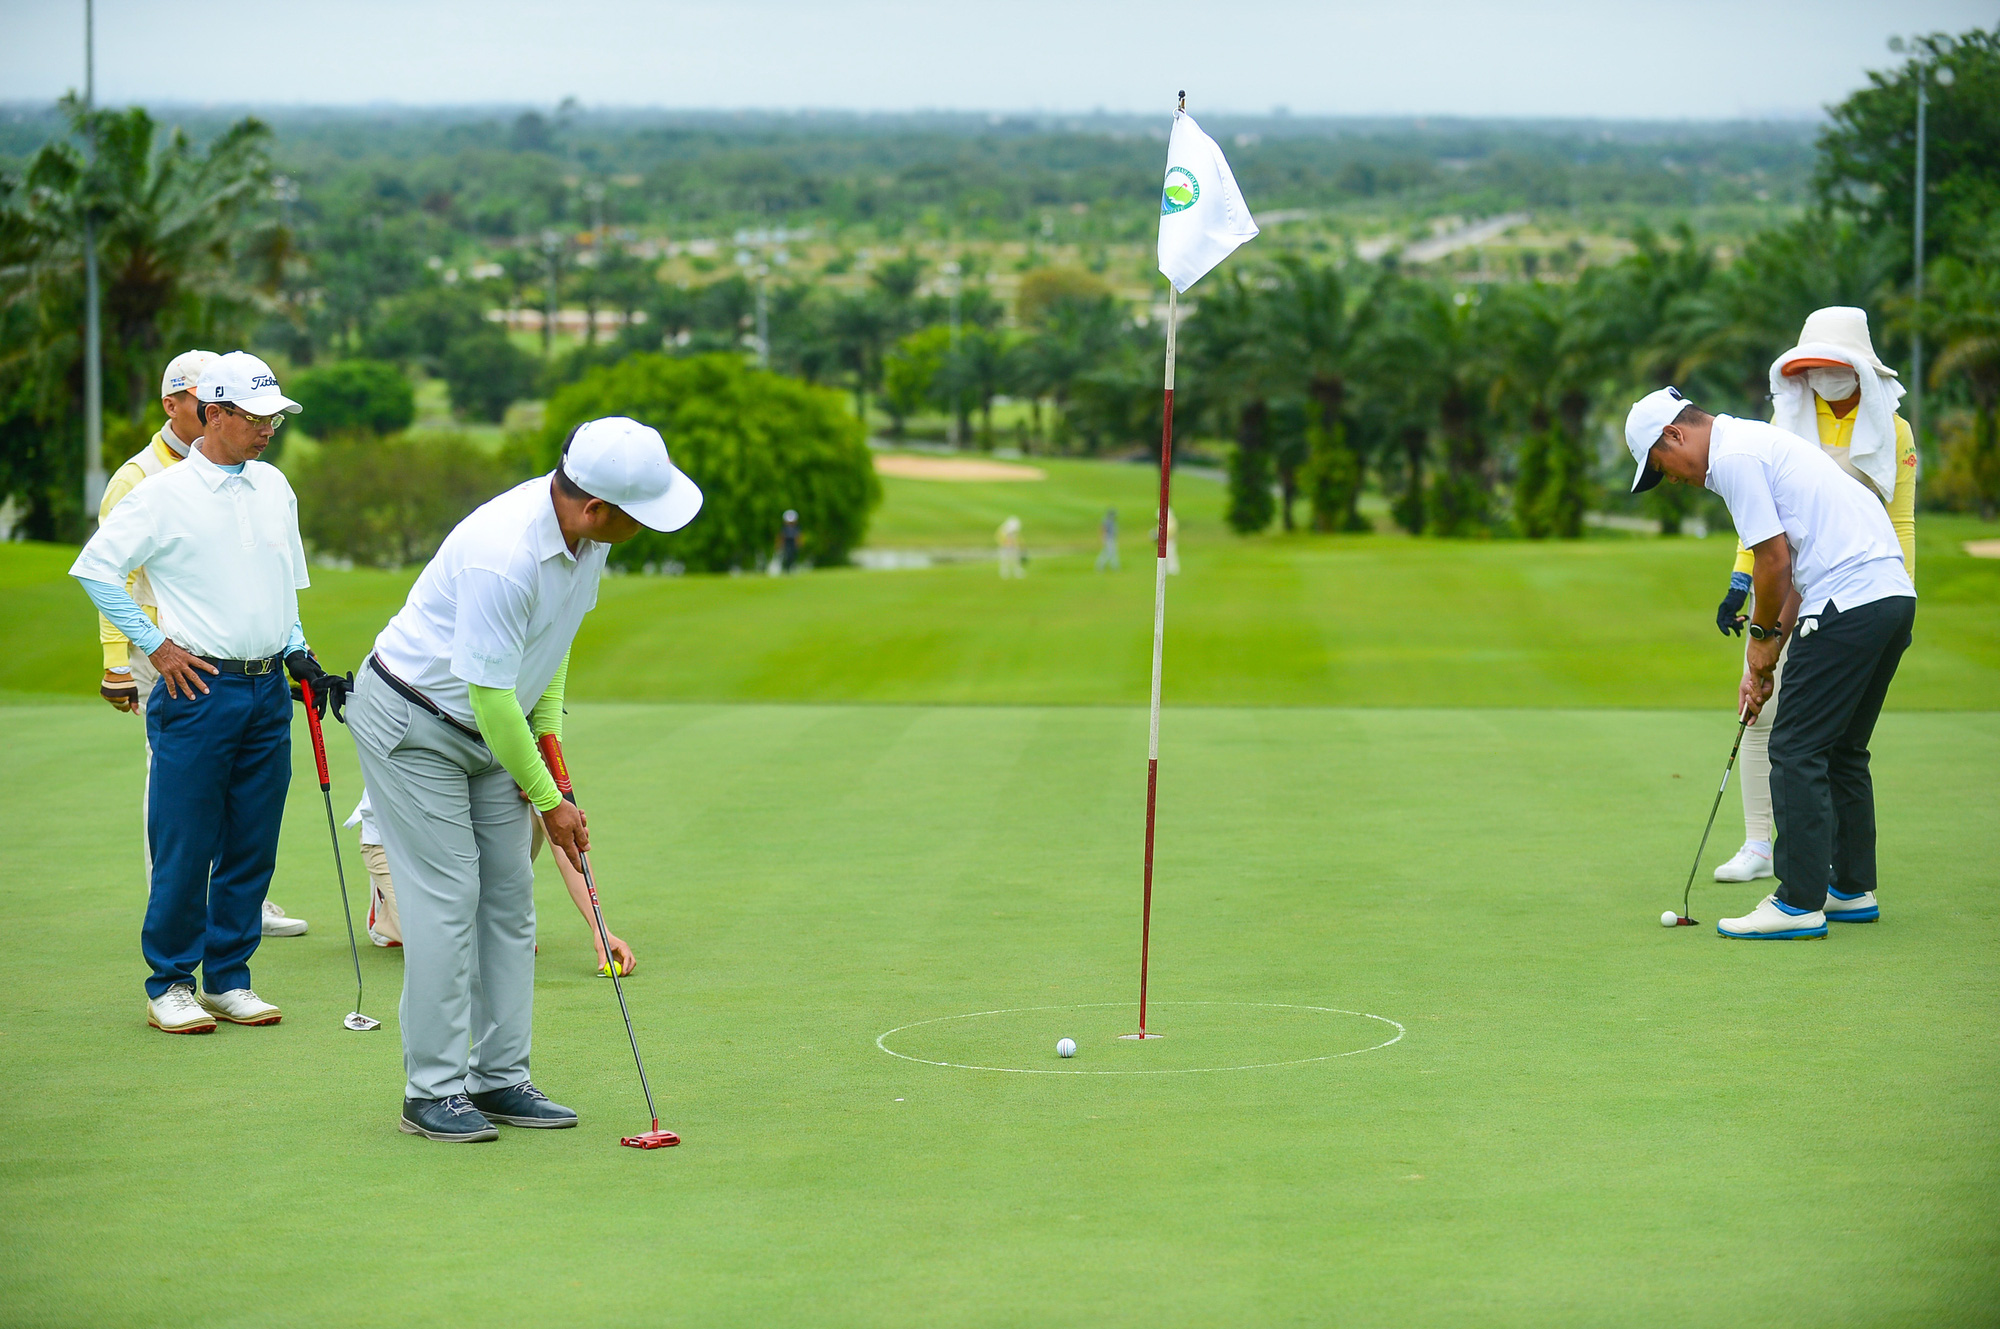 Golf course construction a bone of contention in Vietnam